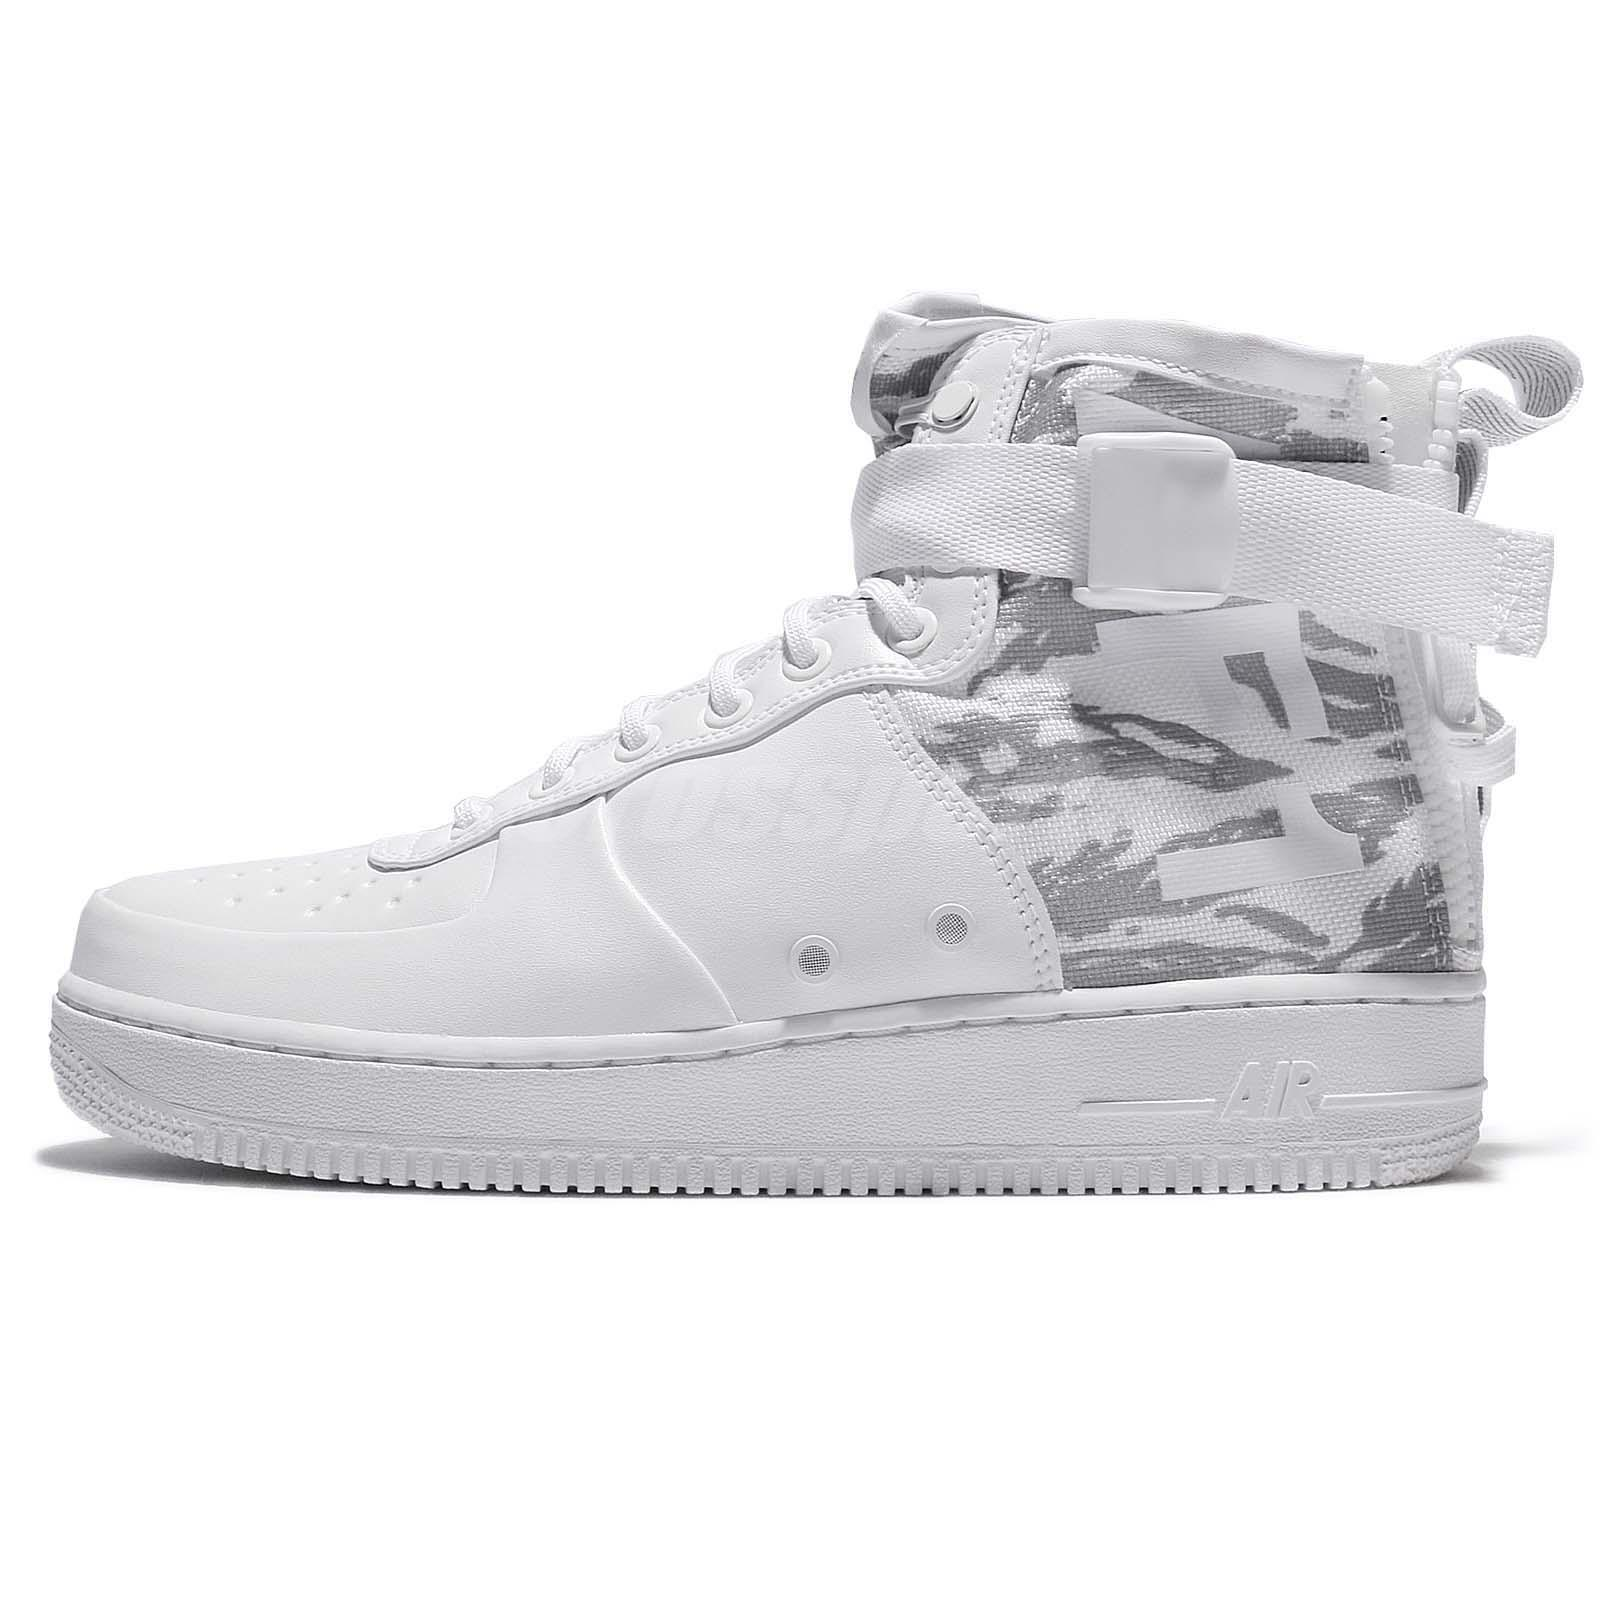 Nike SF AF1 Mid PRM Special Field Blanco Force Snow Camo Hombre Air Force Blanco 1 066151